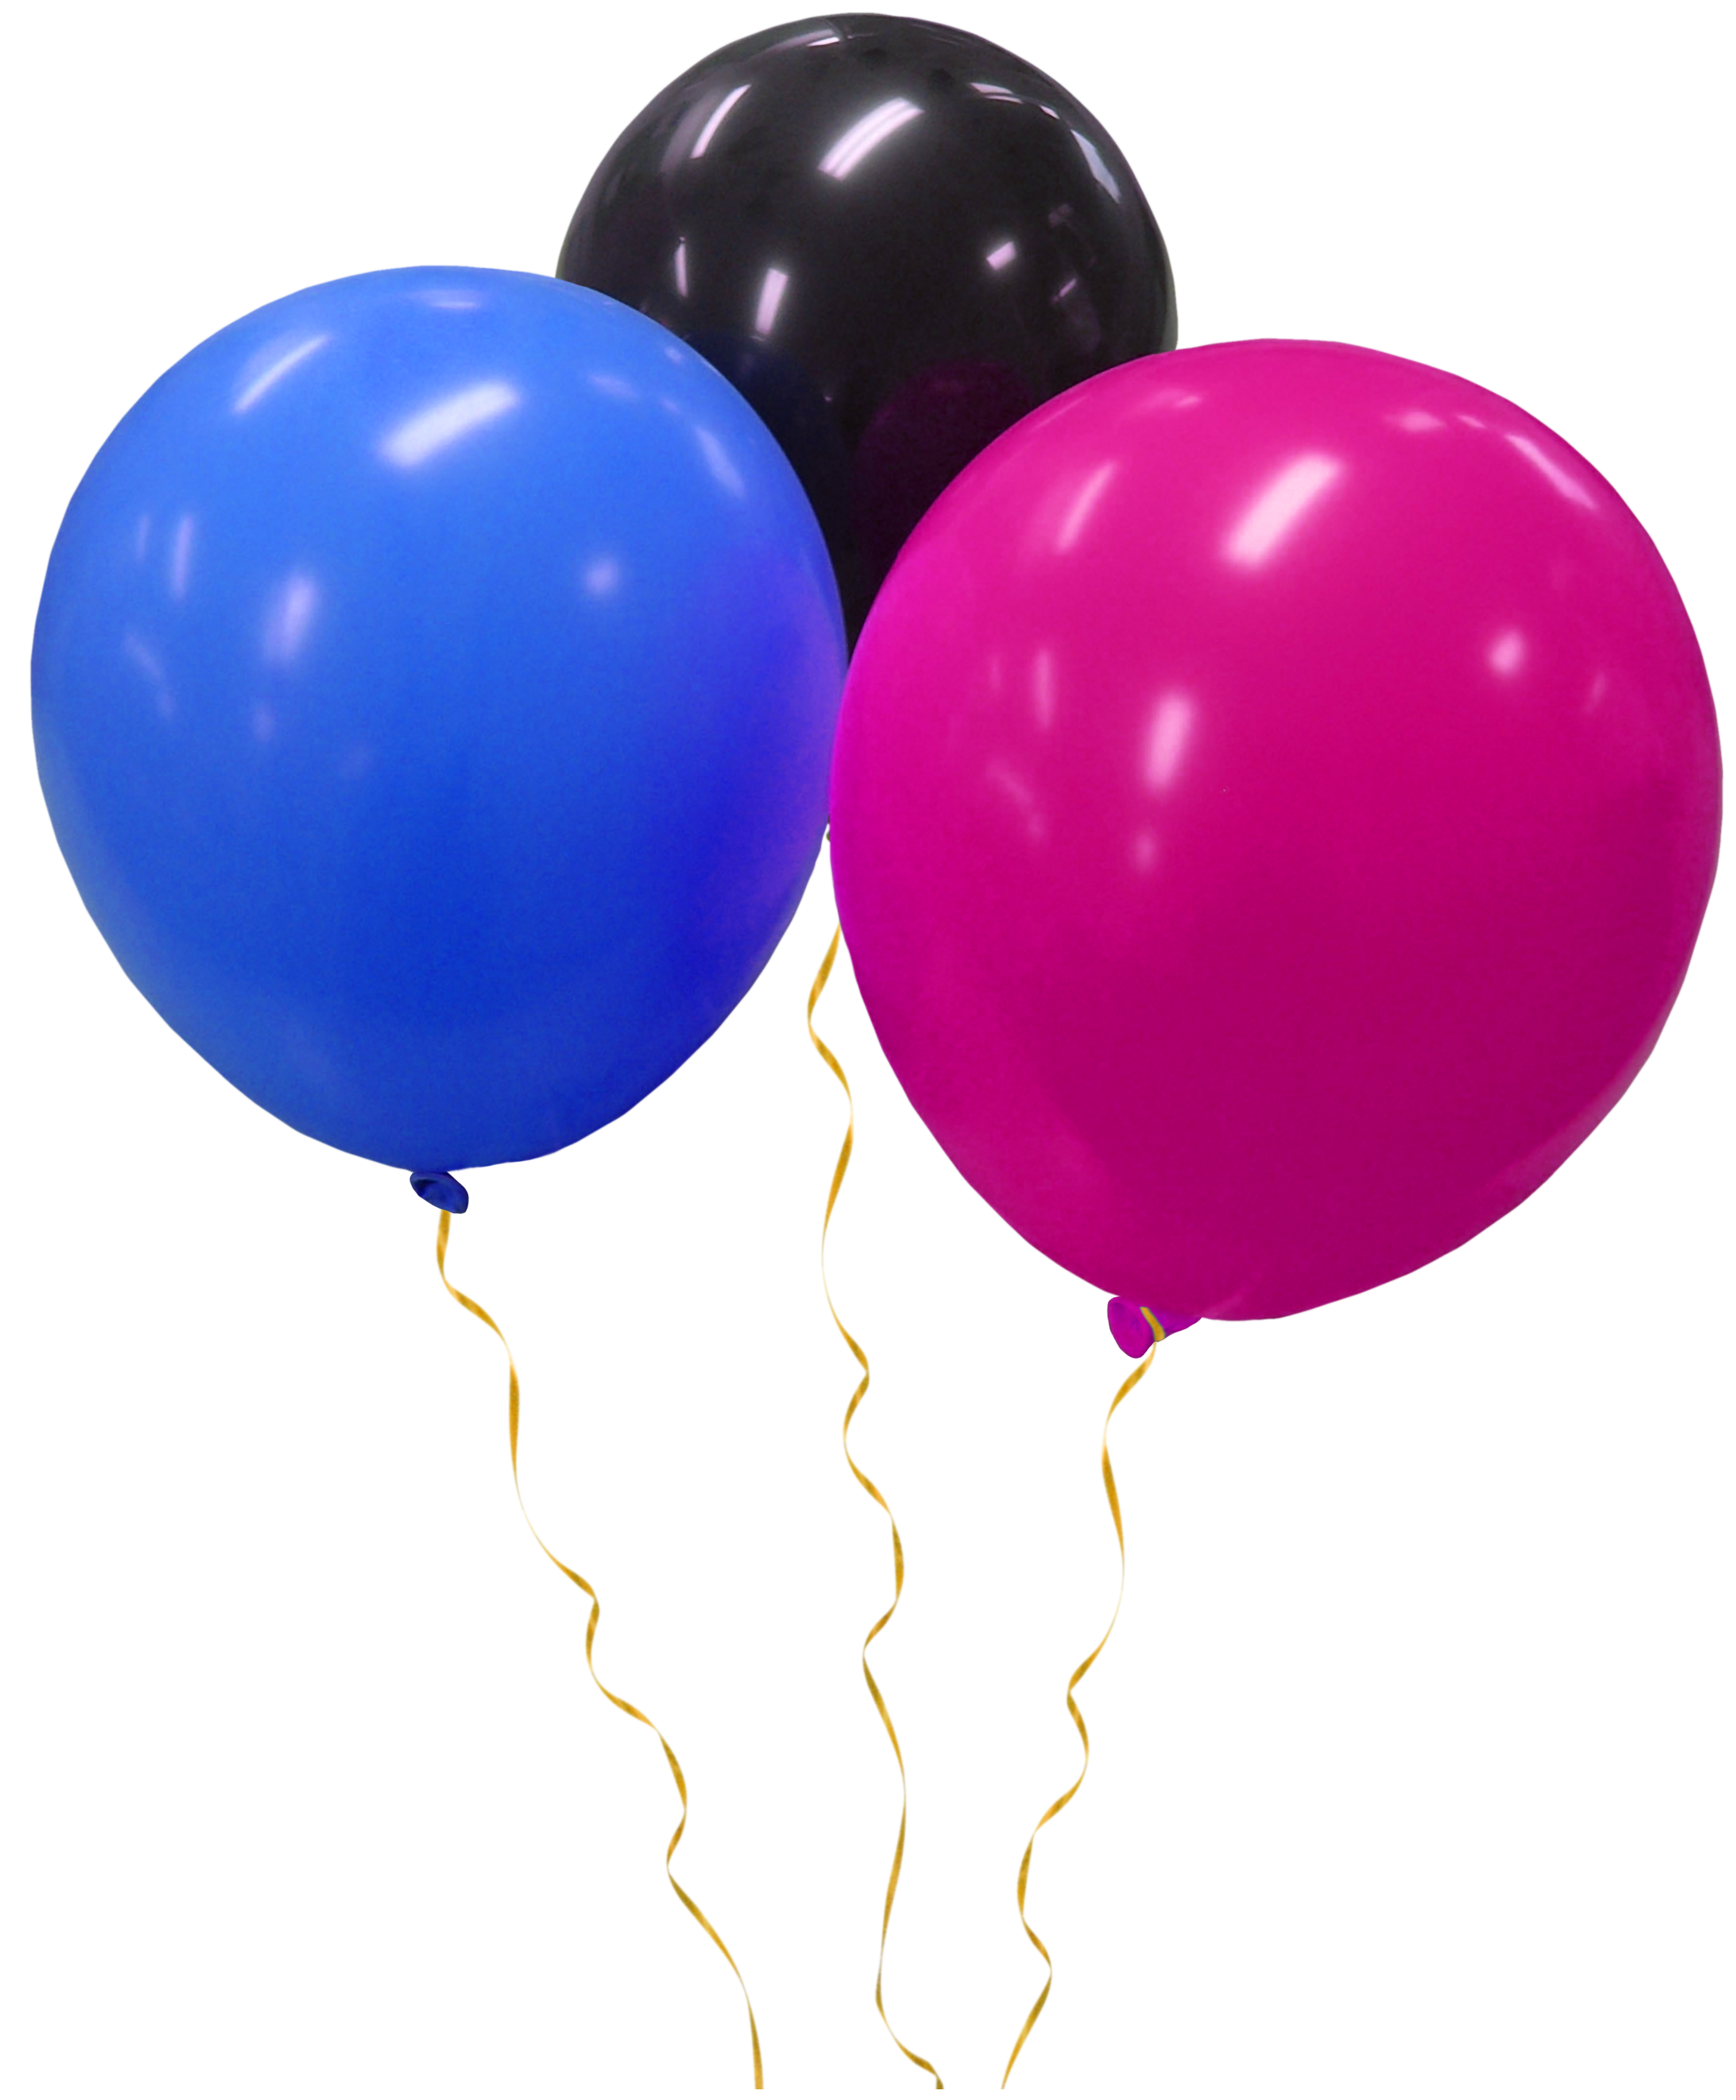 photo of for. Clipart balloon classy